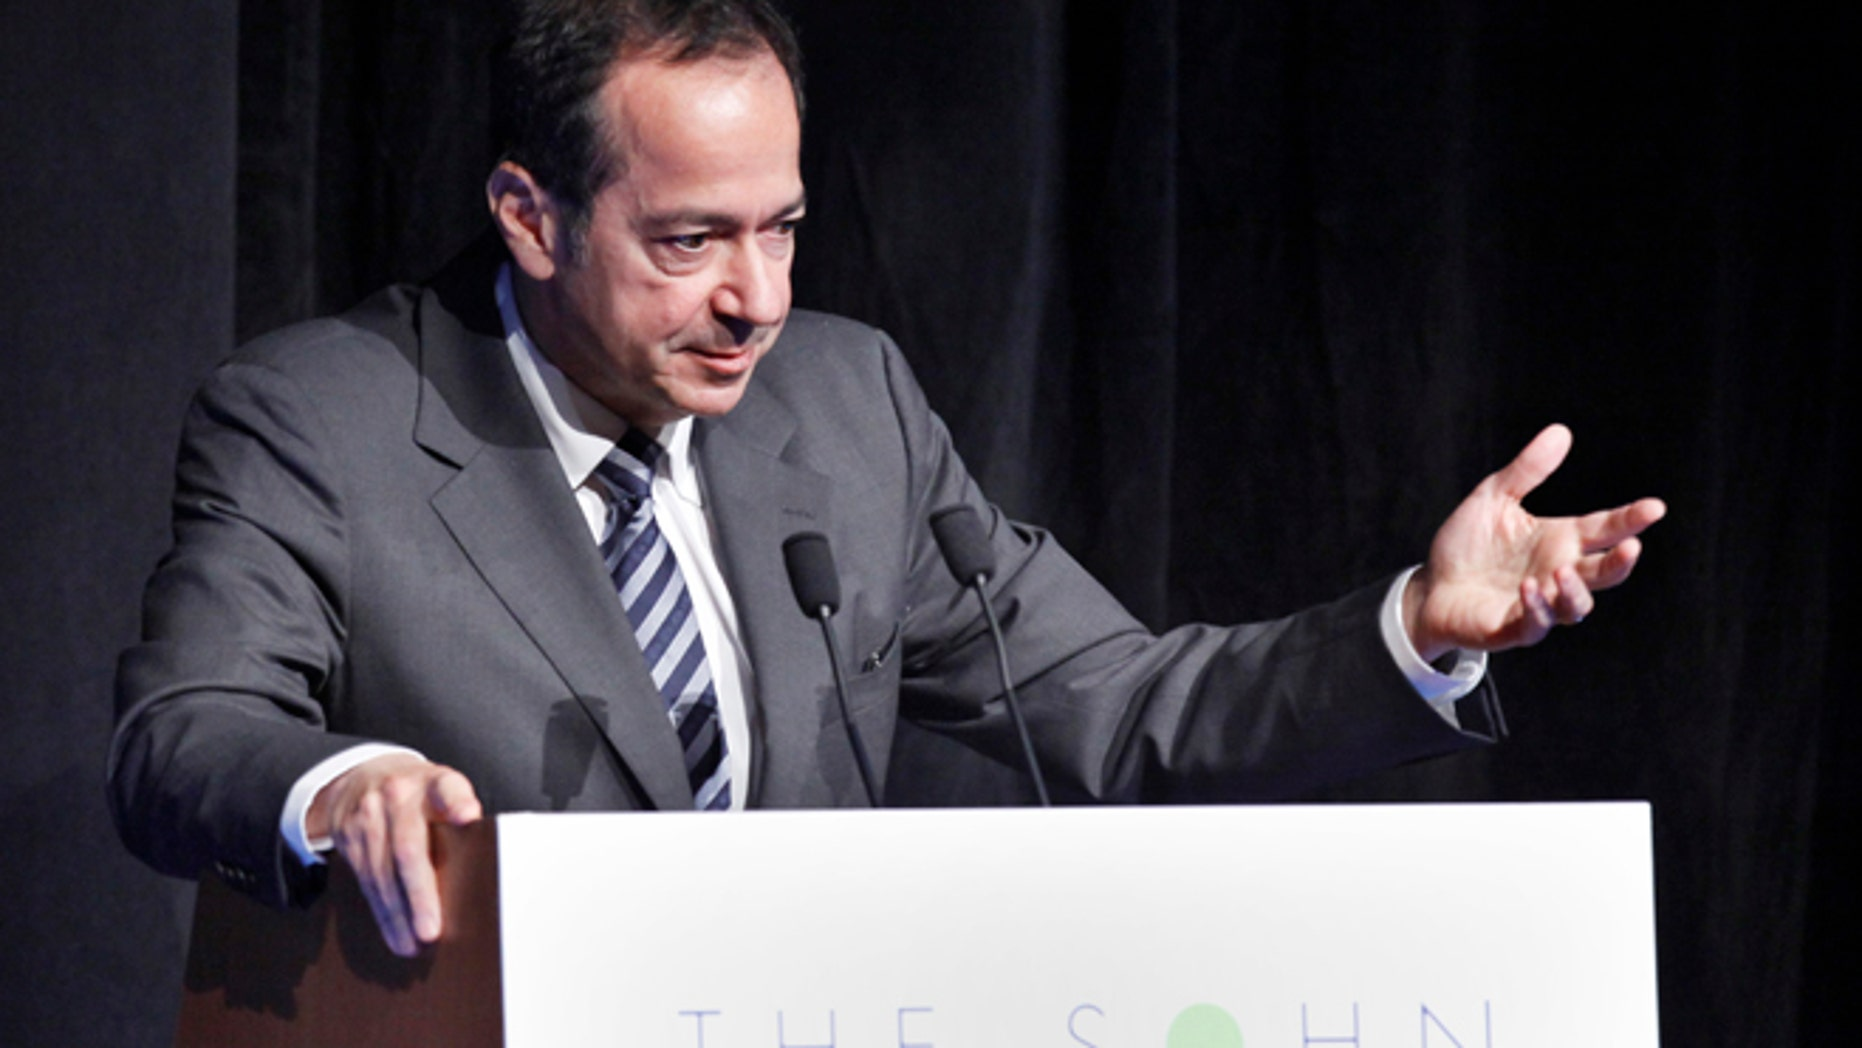 FILE 2012: President and Portfolio Manager of Paulson & Co. John Paulson speaks during the Sohn Investment Conference in New York.